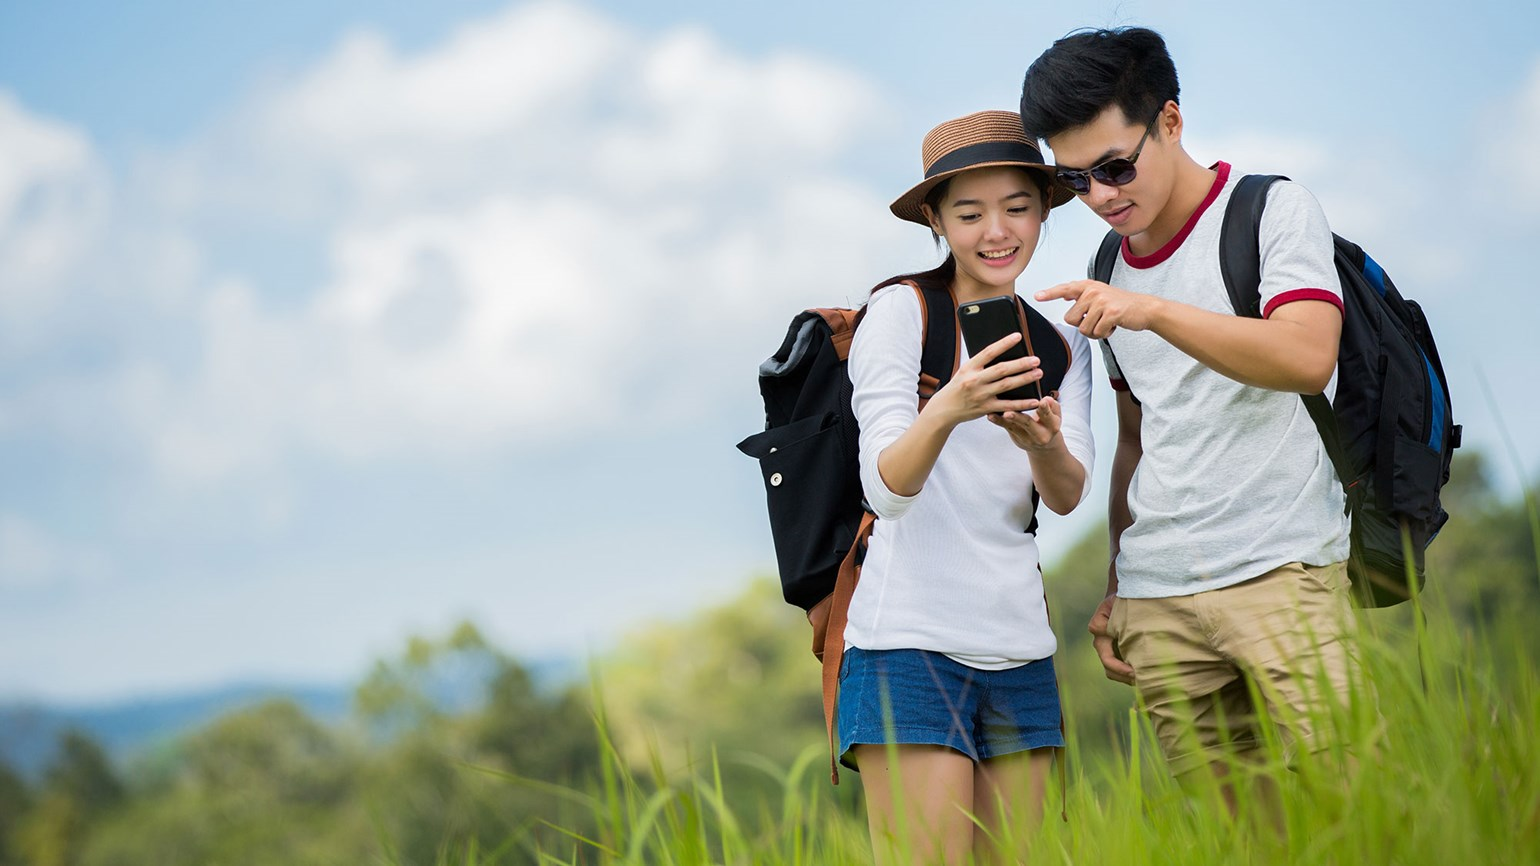 Chinese millennials nearly doubled travel spending in the past year